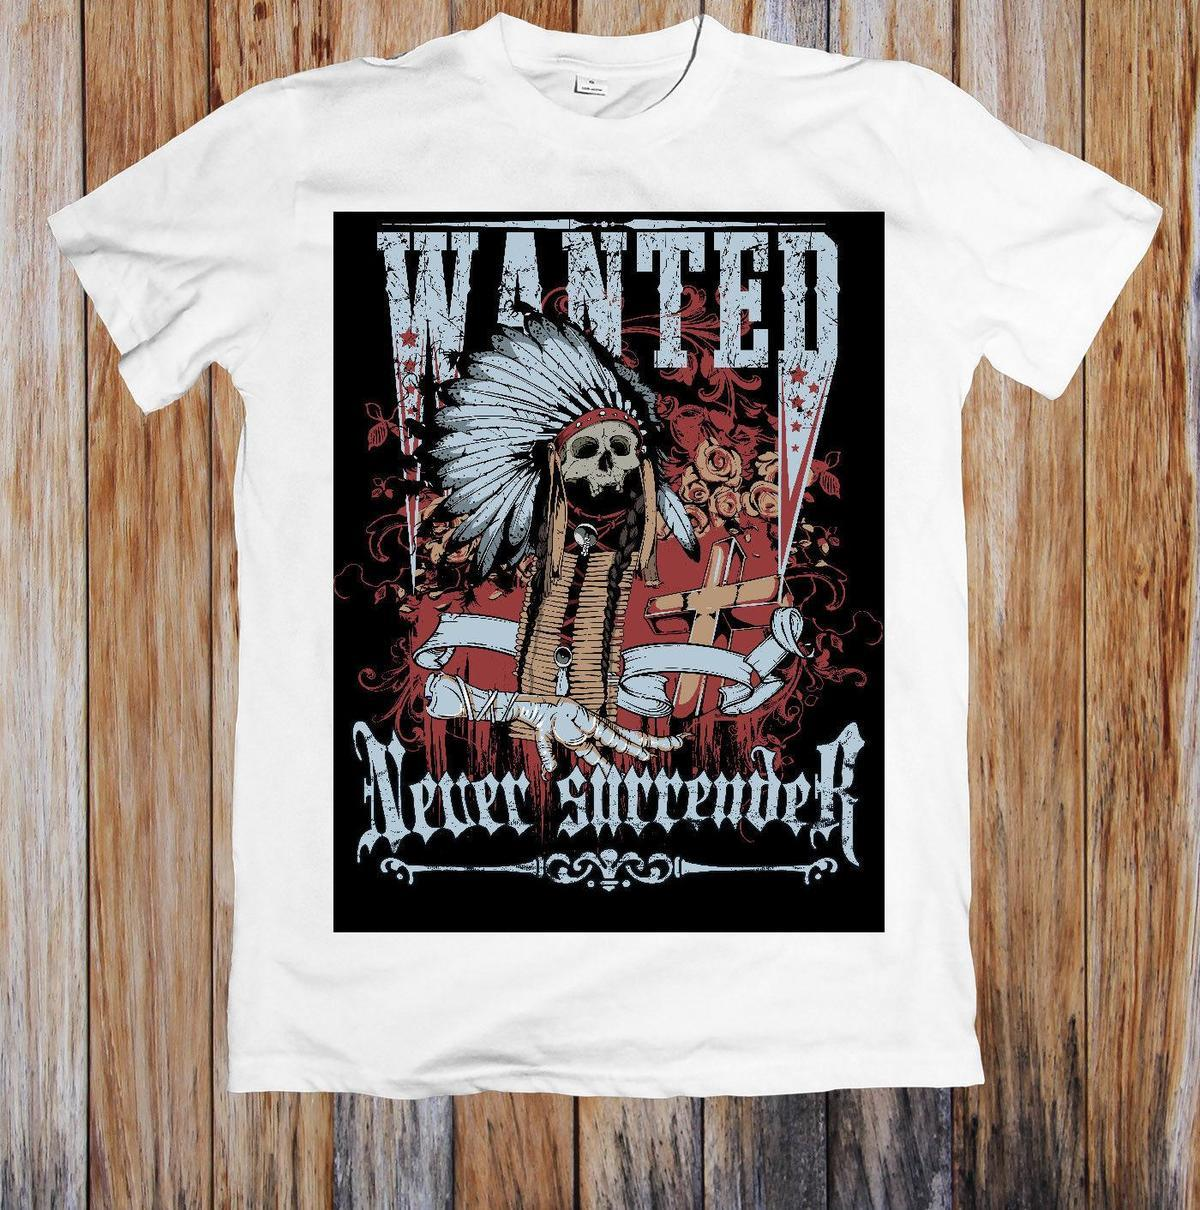 f035470f3 WANTED INDIAN NEVER SURRENDER UNISEX T SHIRT Buy Shirt Designs Funny Clever  T Shirts From Lijian52, $12.08| DHgate.Com